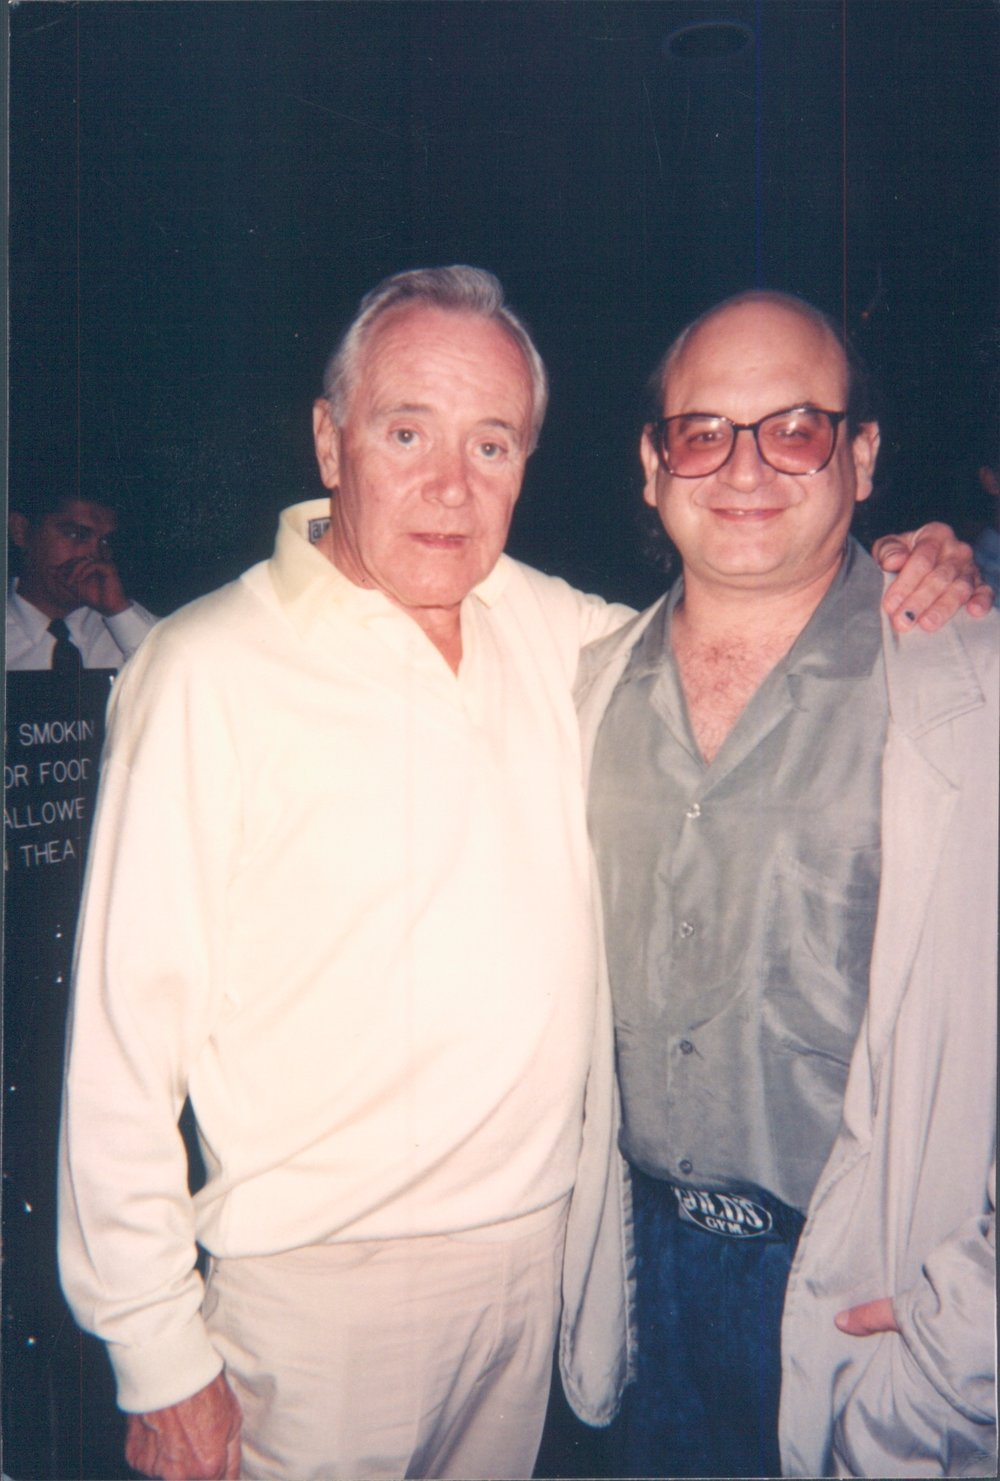 Jack Lemmon, A Life in the Theatre premiere